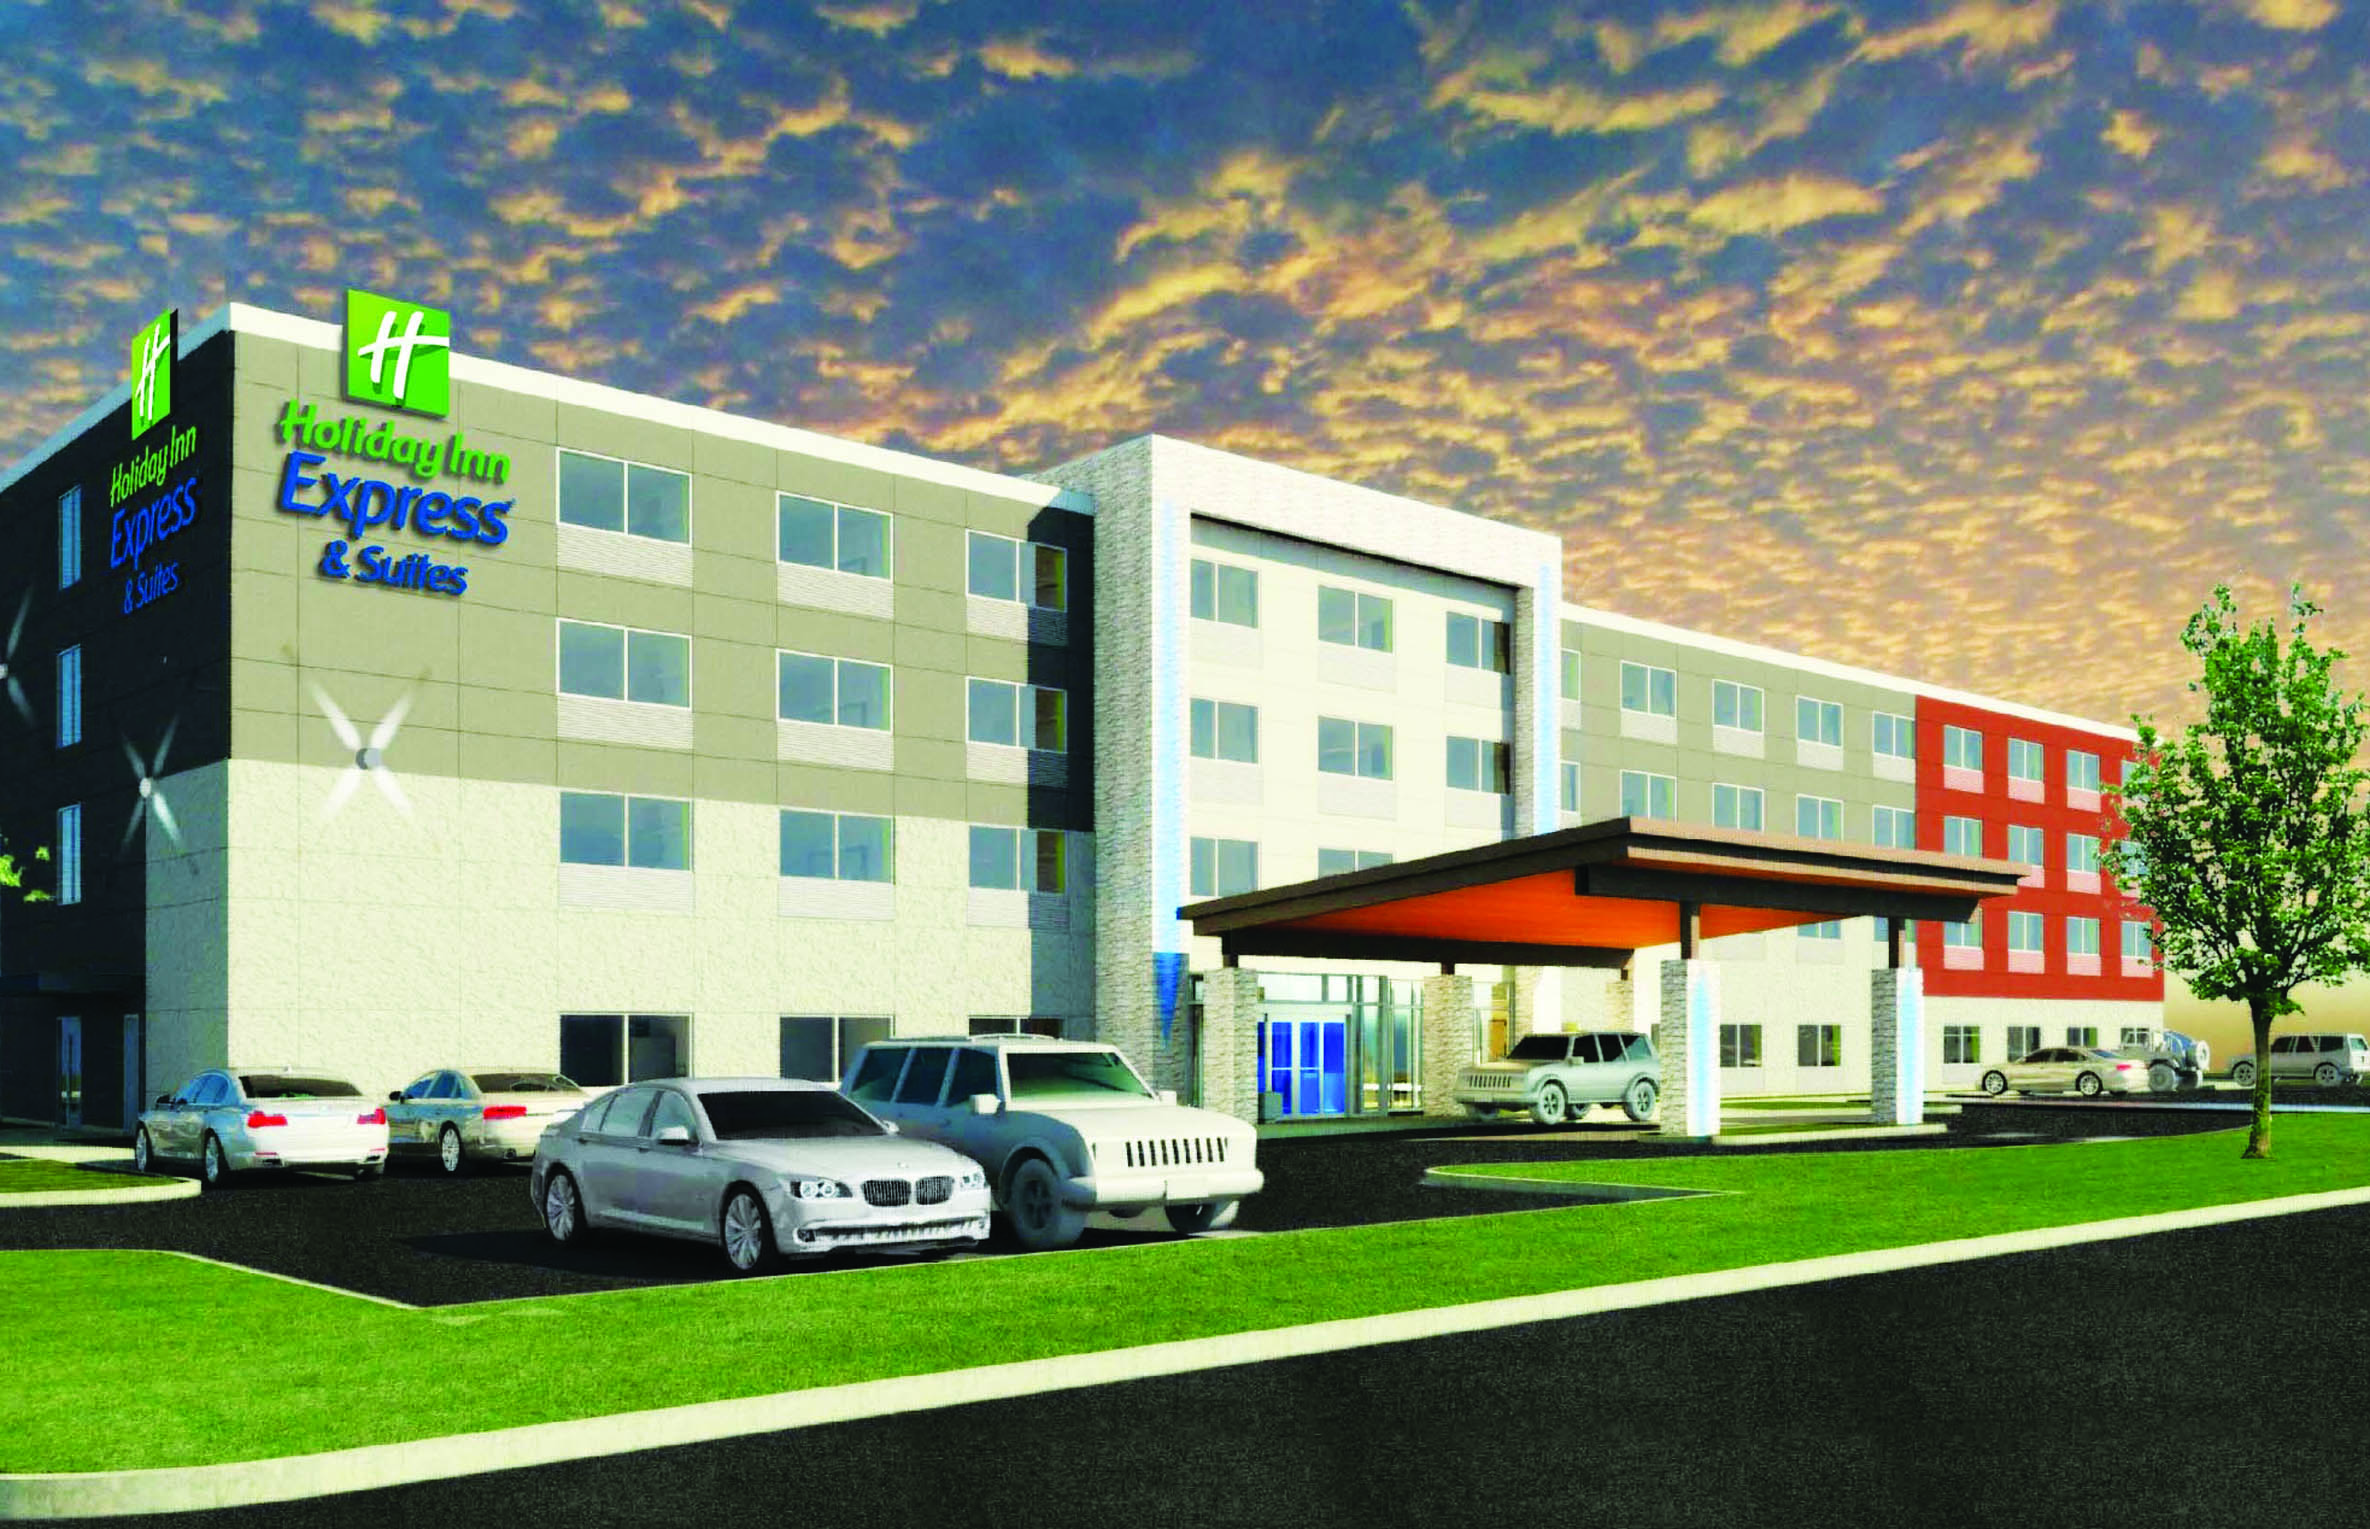 New hotel in proposed planning stages